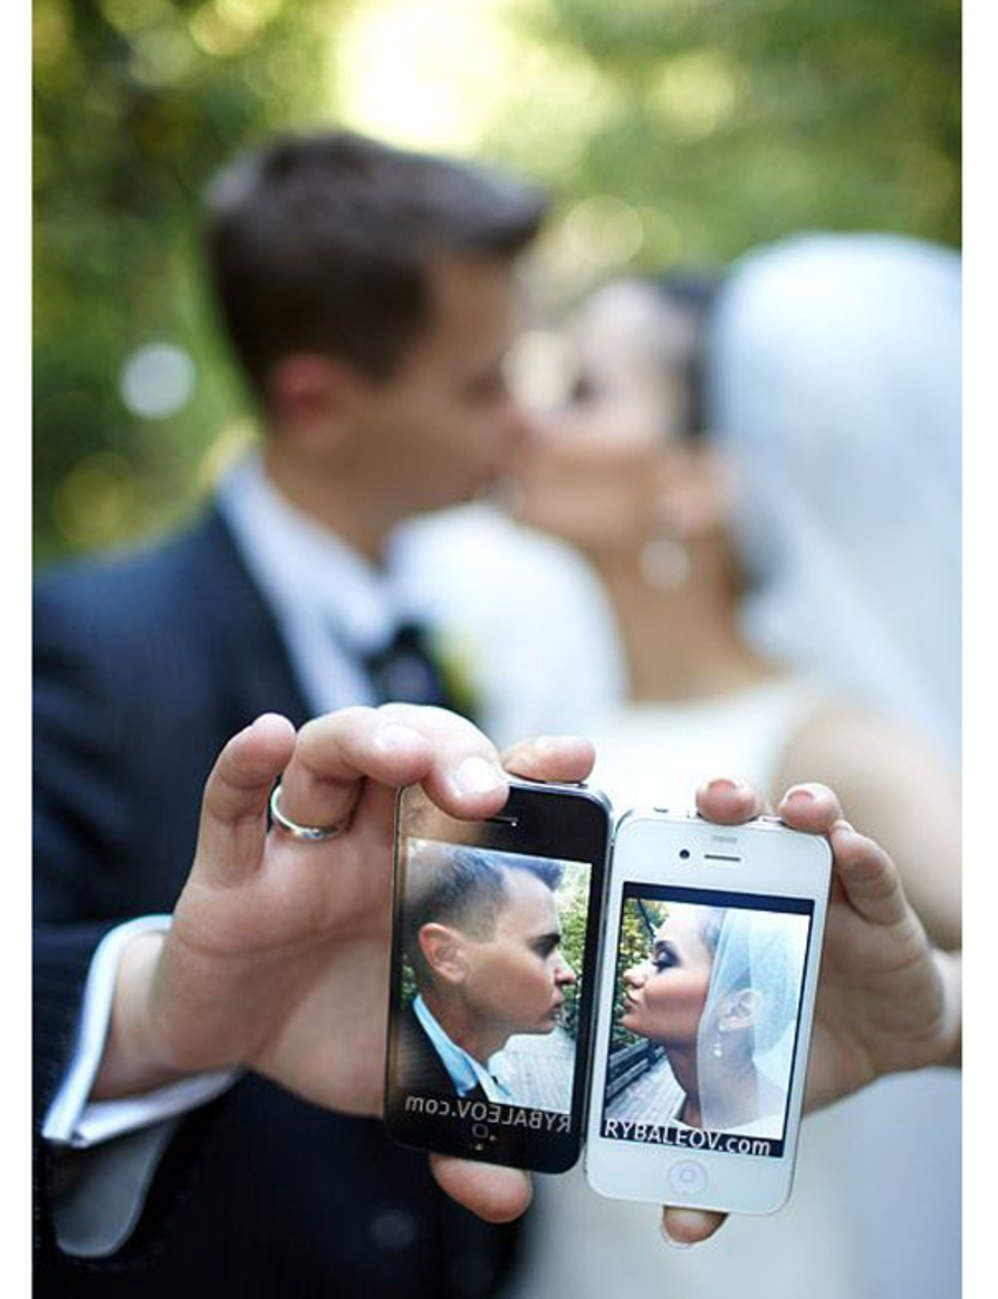 Mariage 10 id es de photos de couple originales toiles for Idees commerce qui marche